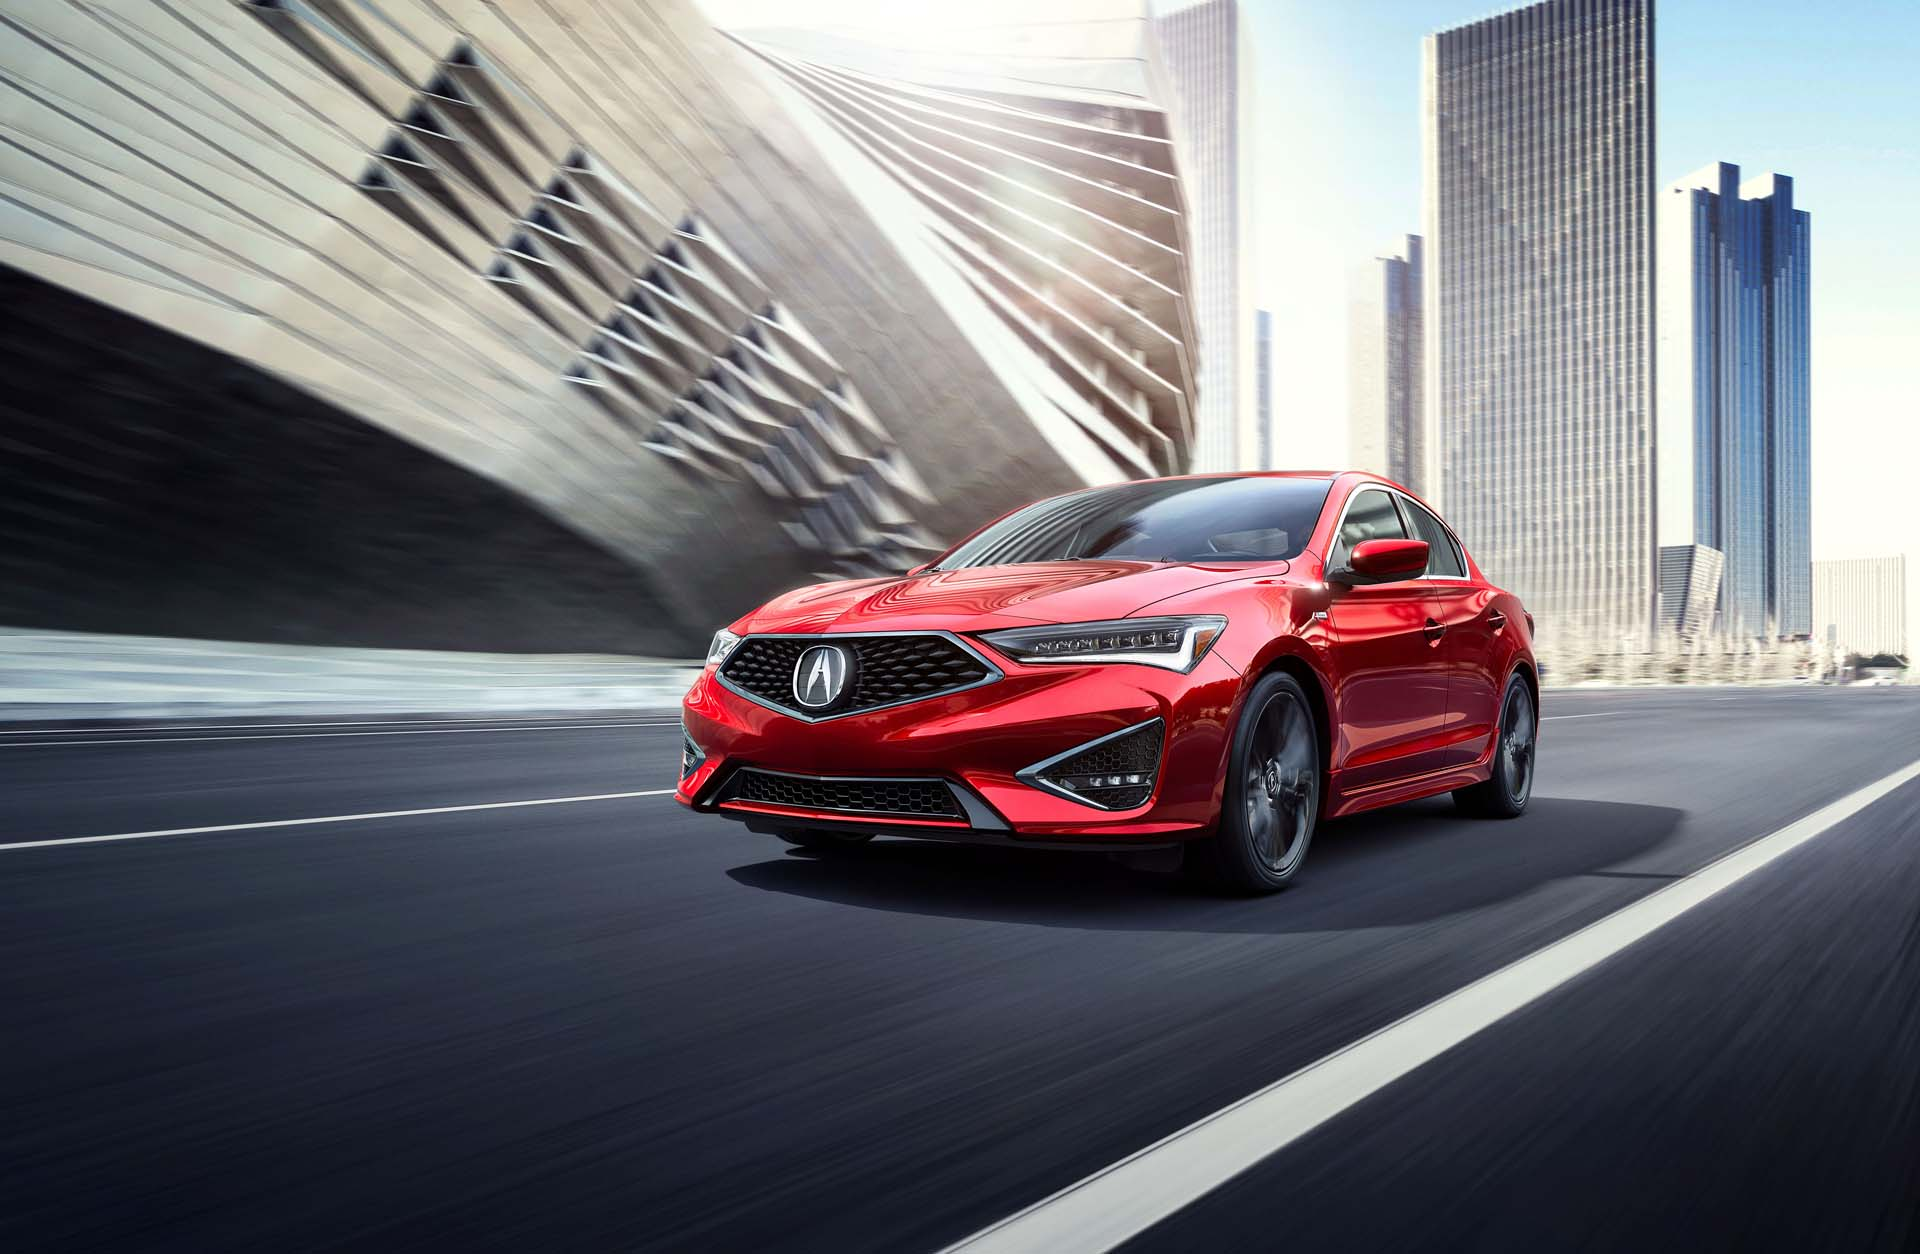 What is the 2019 Acura ILX's Fuel Economy?